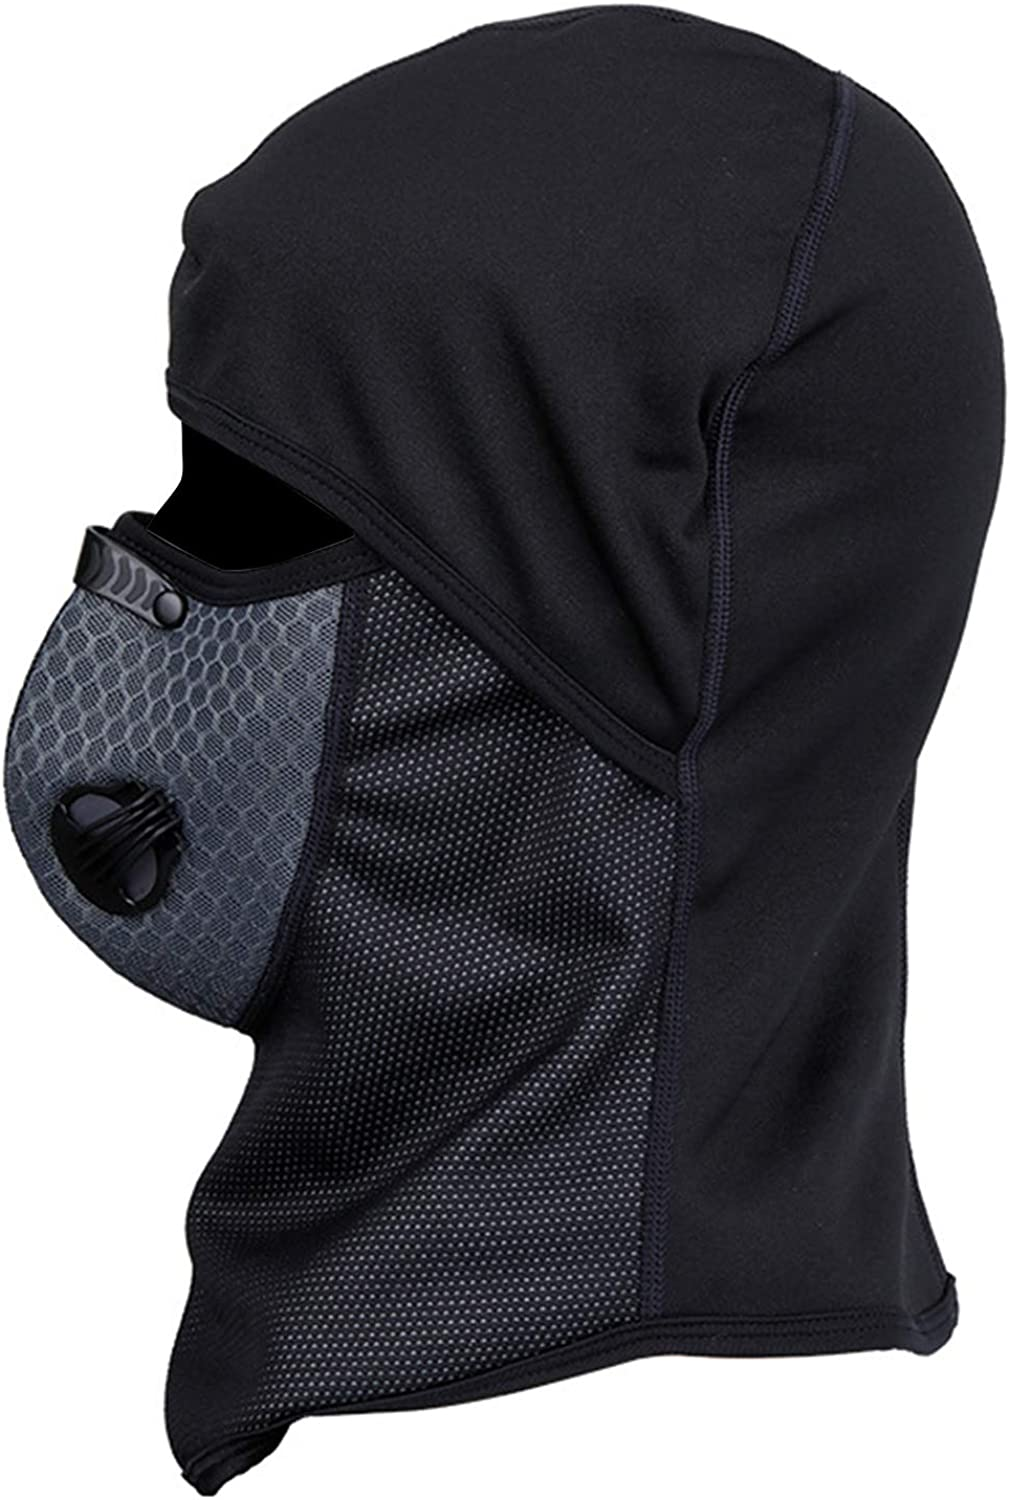 TOBWOLF Windproof Ski Balaclava Mask, Dustproof Masks with Breathable Vents & Activated Carbon Filters for Exhaust Gas, Skiing, Cycling, Motorcycling